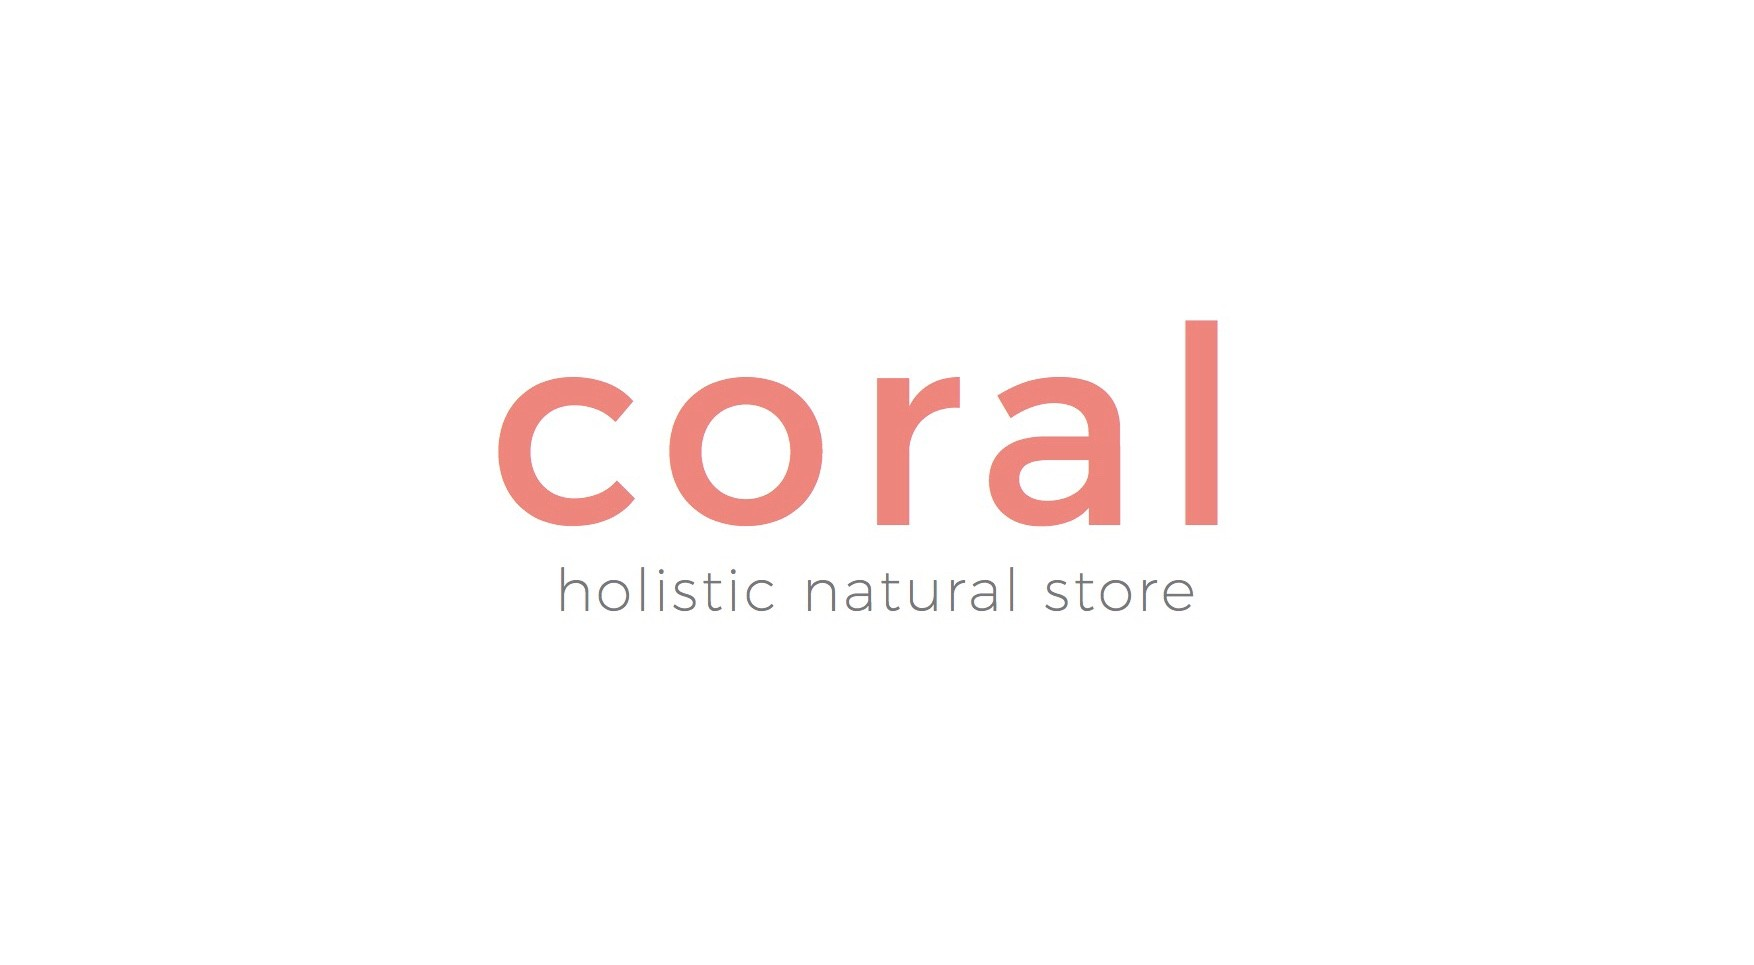 coral holistic natural store